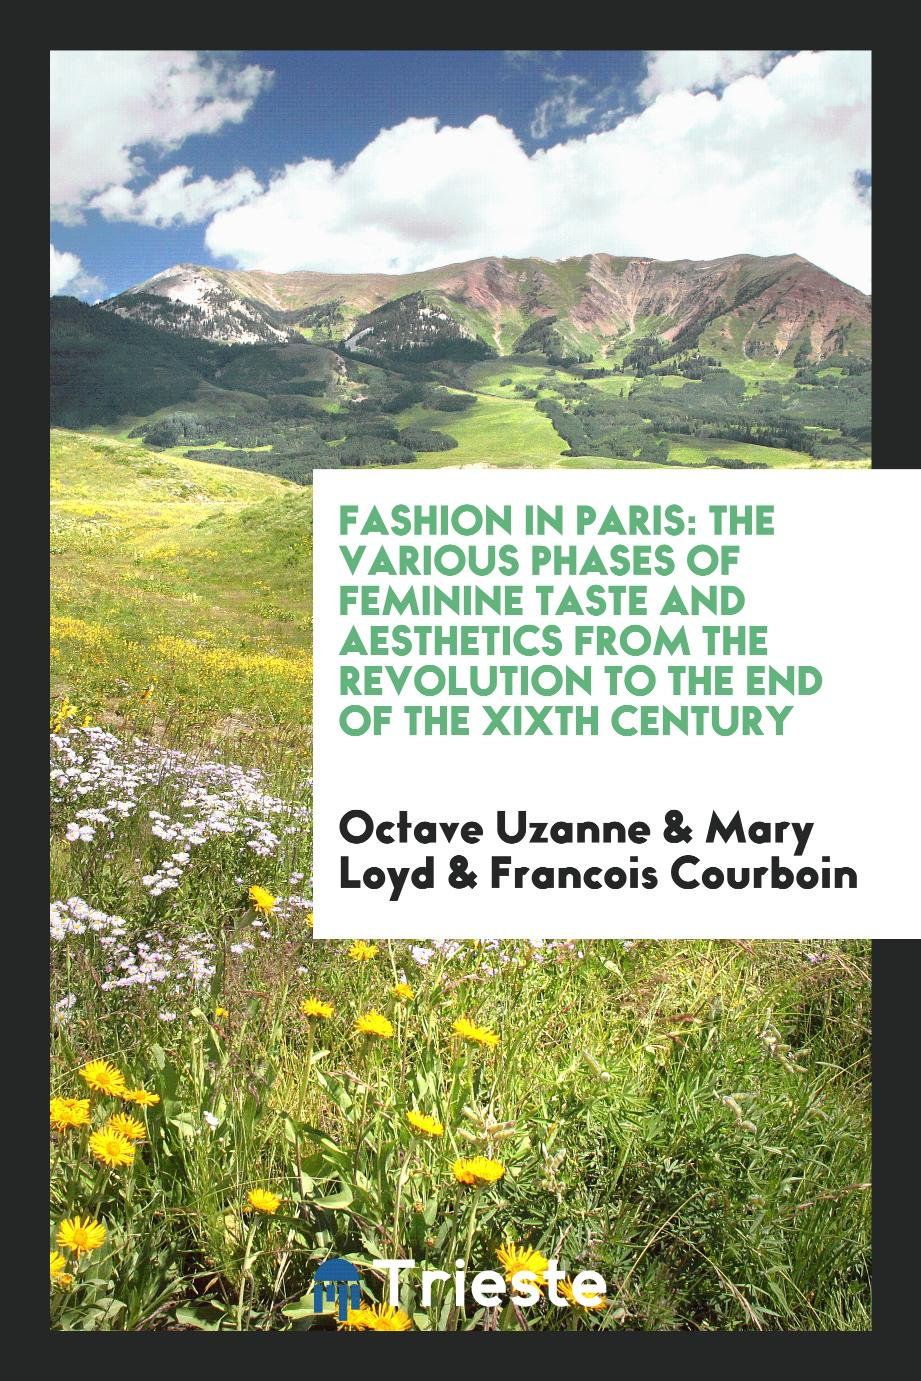 Fashion in Paris: The Various Phases of Feminine Taste and Aesthetics from the Revolution to the End of the XIXth Century